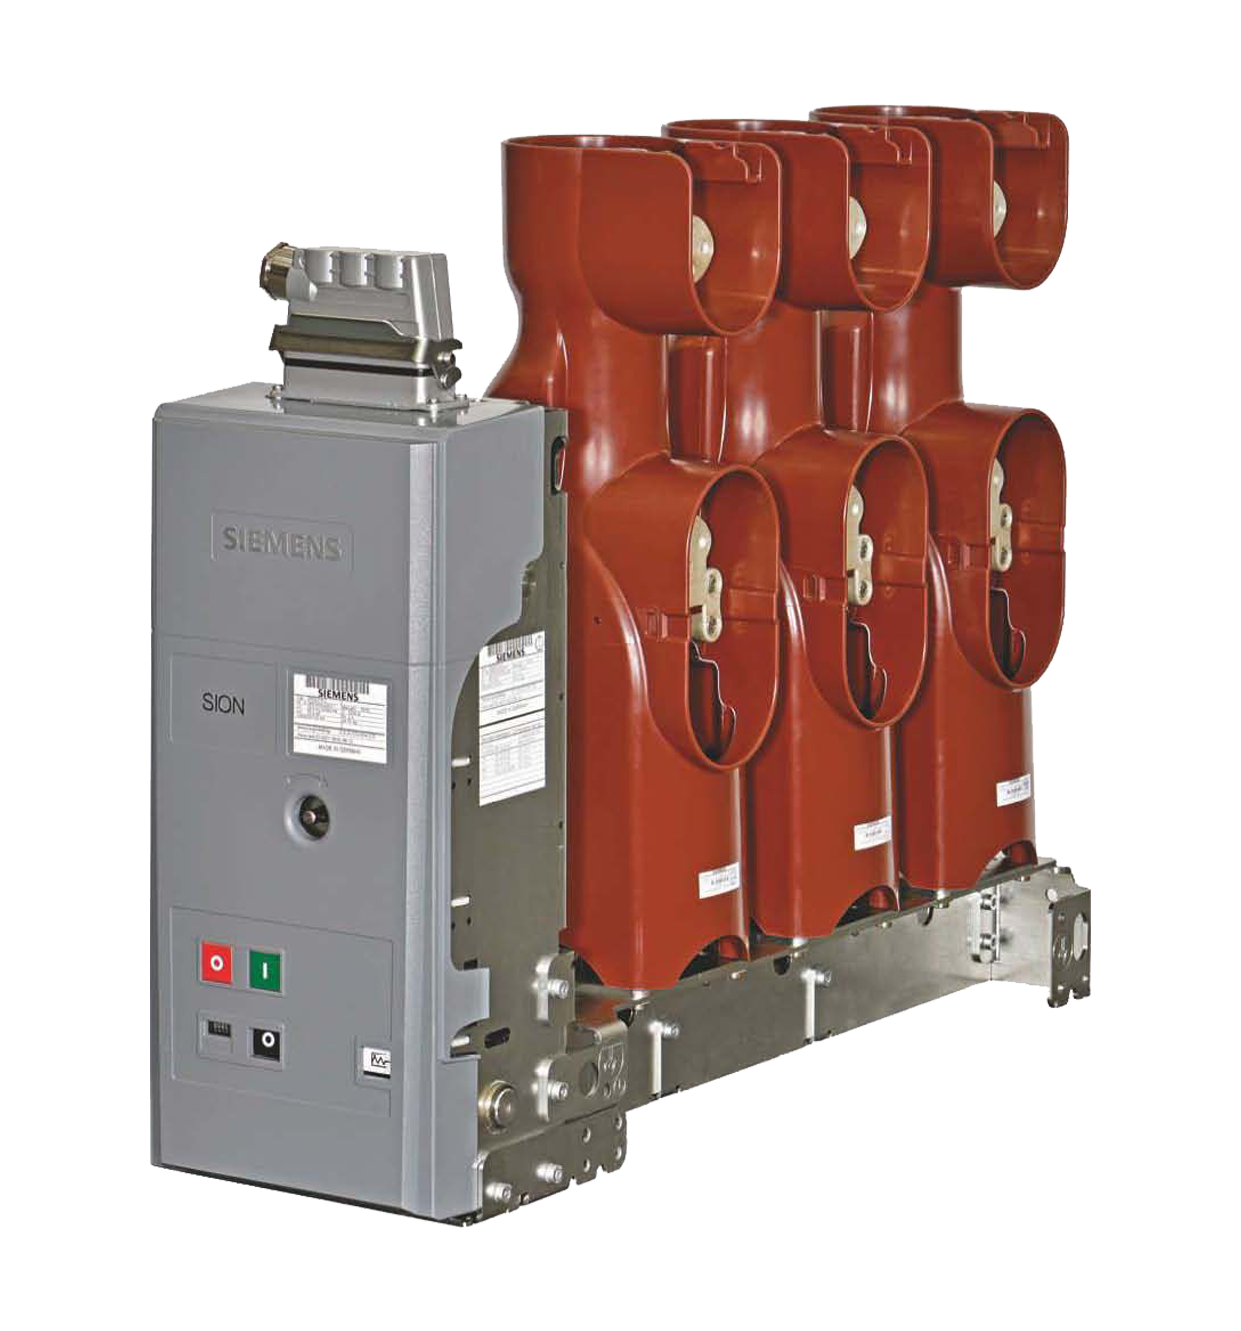 sion_lateral_vacuum_circuit_breaker_with_lateral_operating_mechanism_3ae6_pi_en